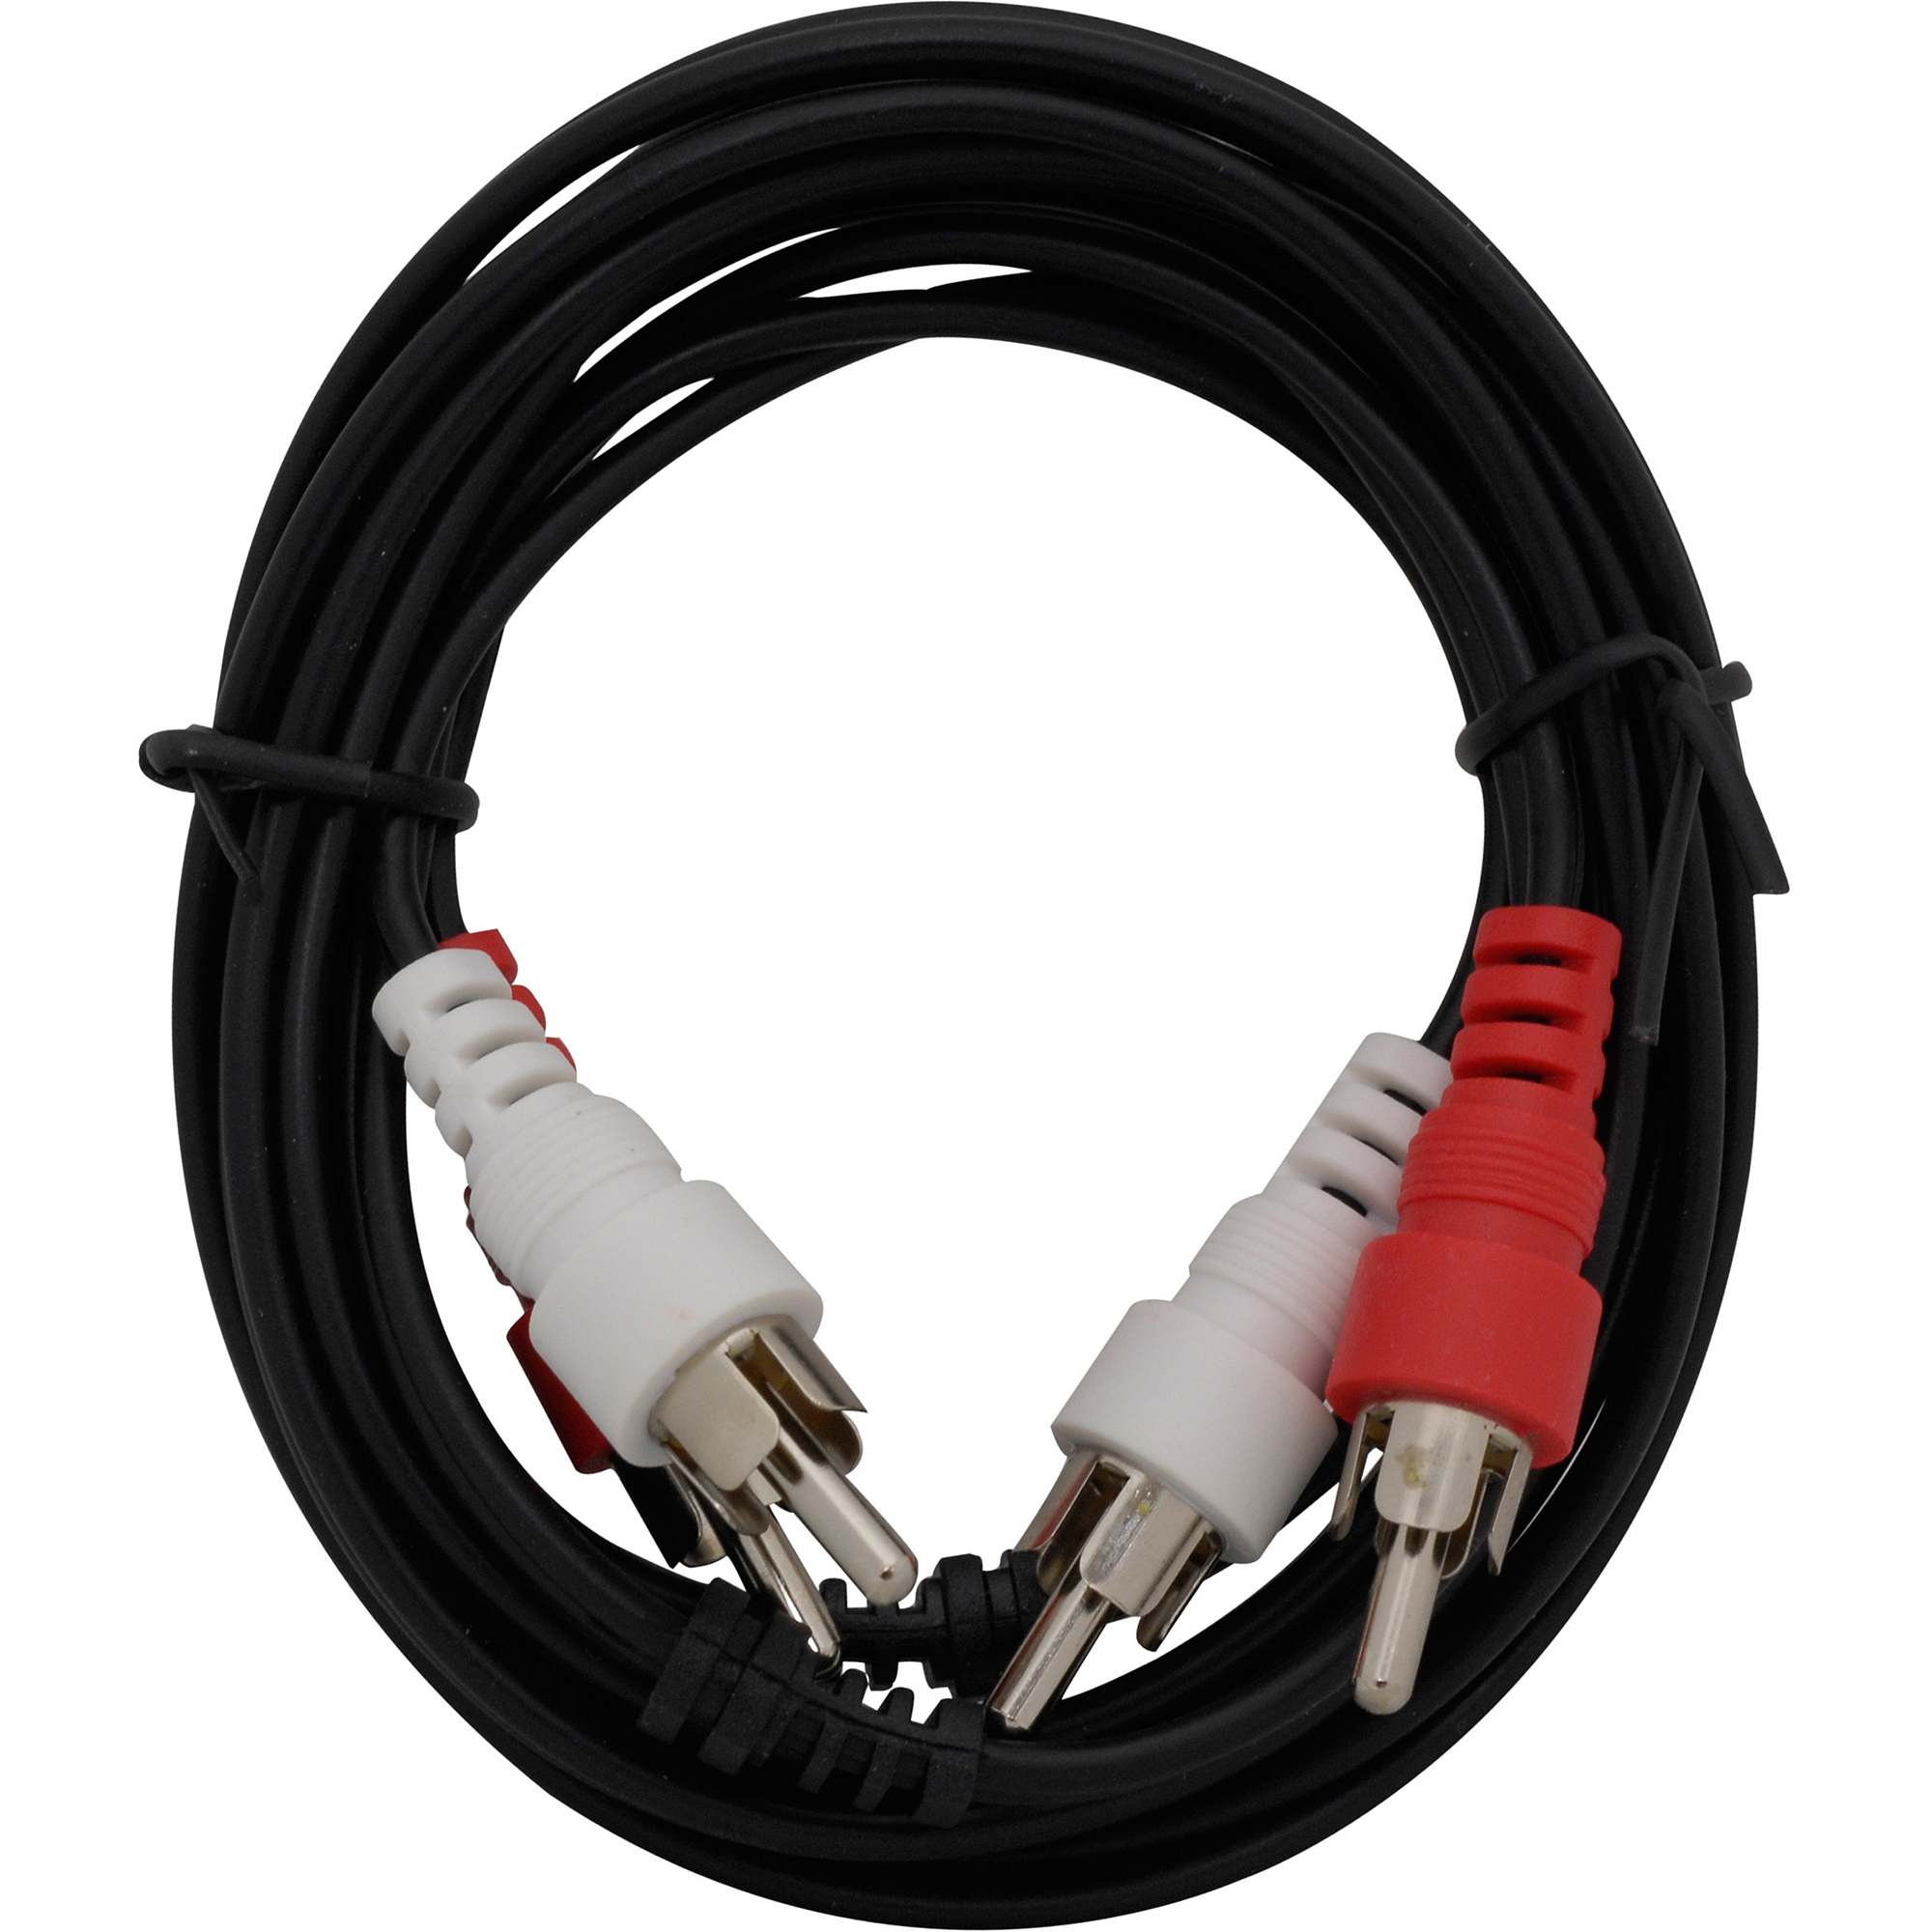 GE Stereo Audio Cable, 6'